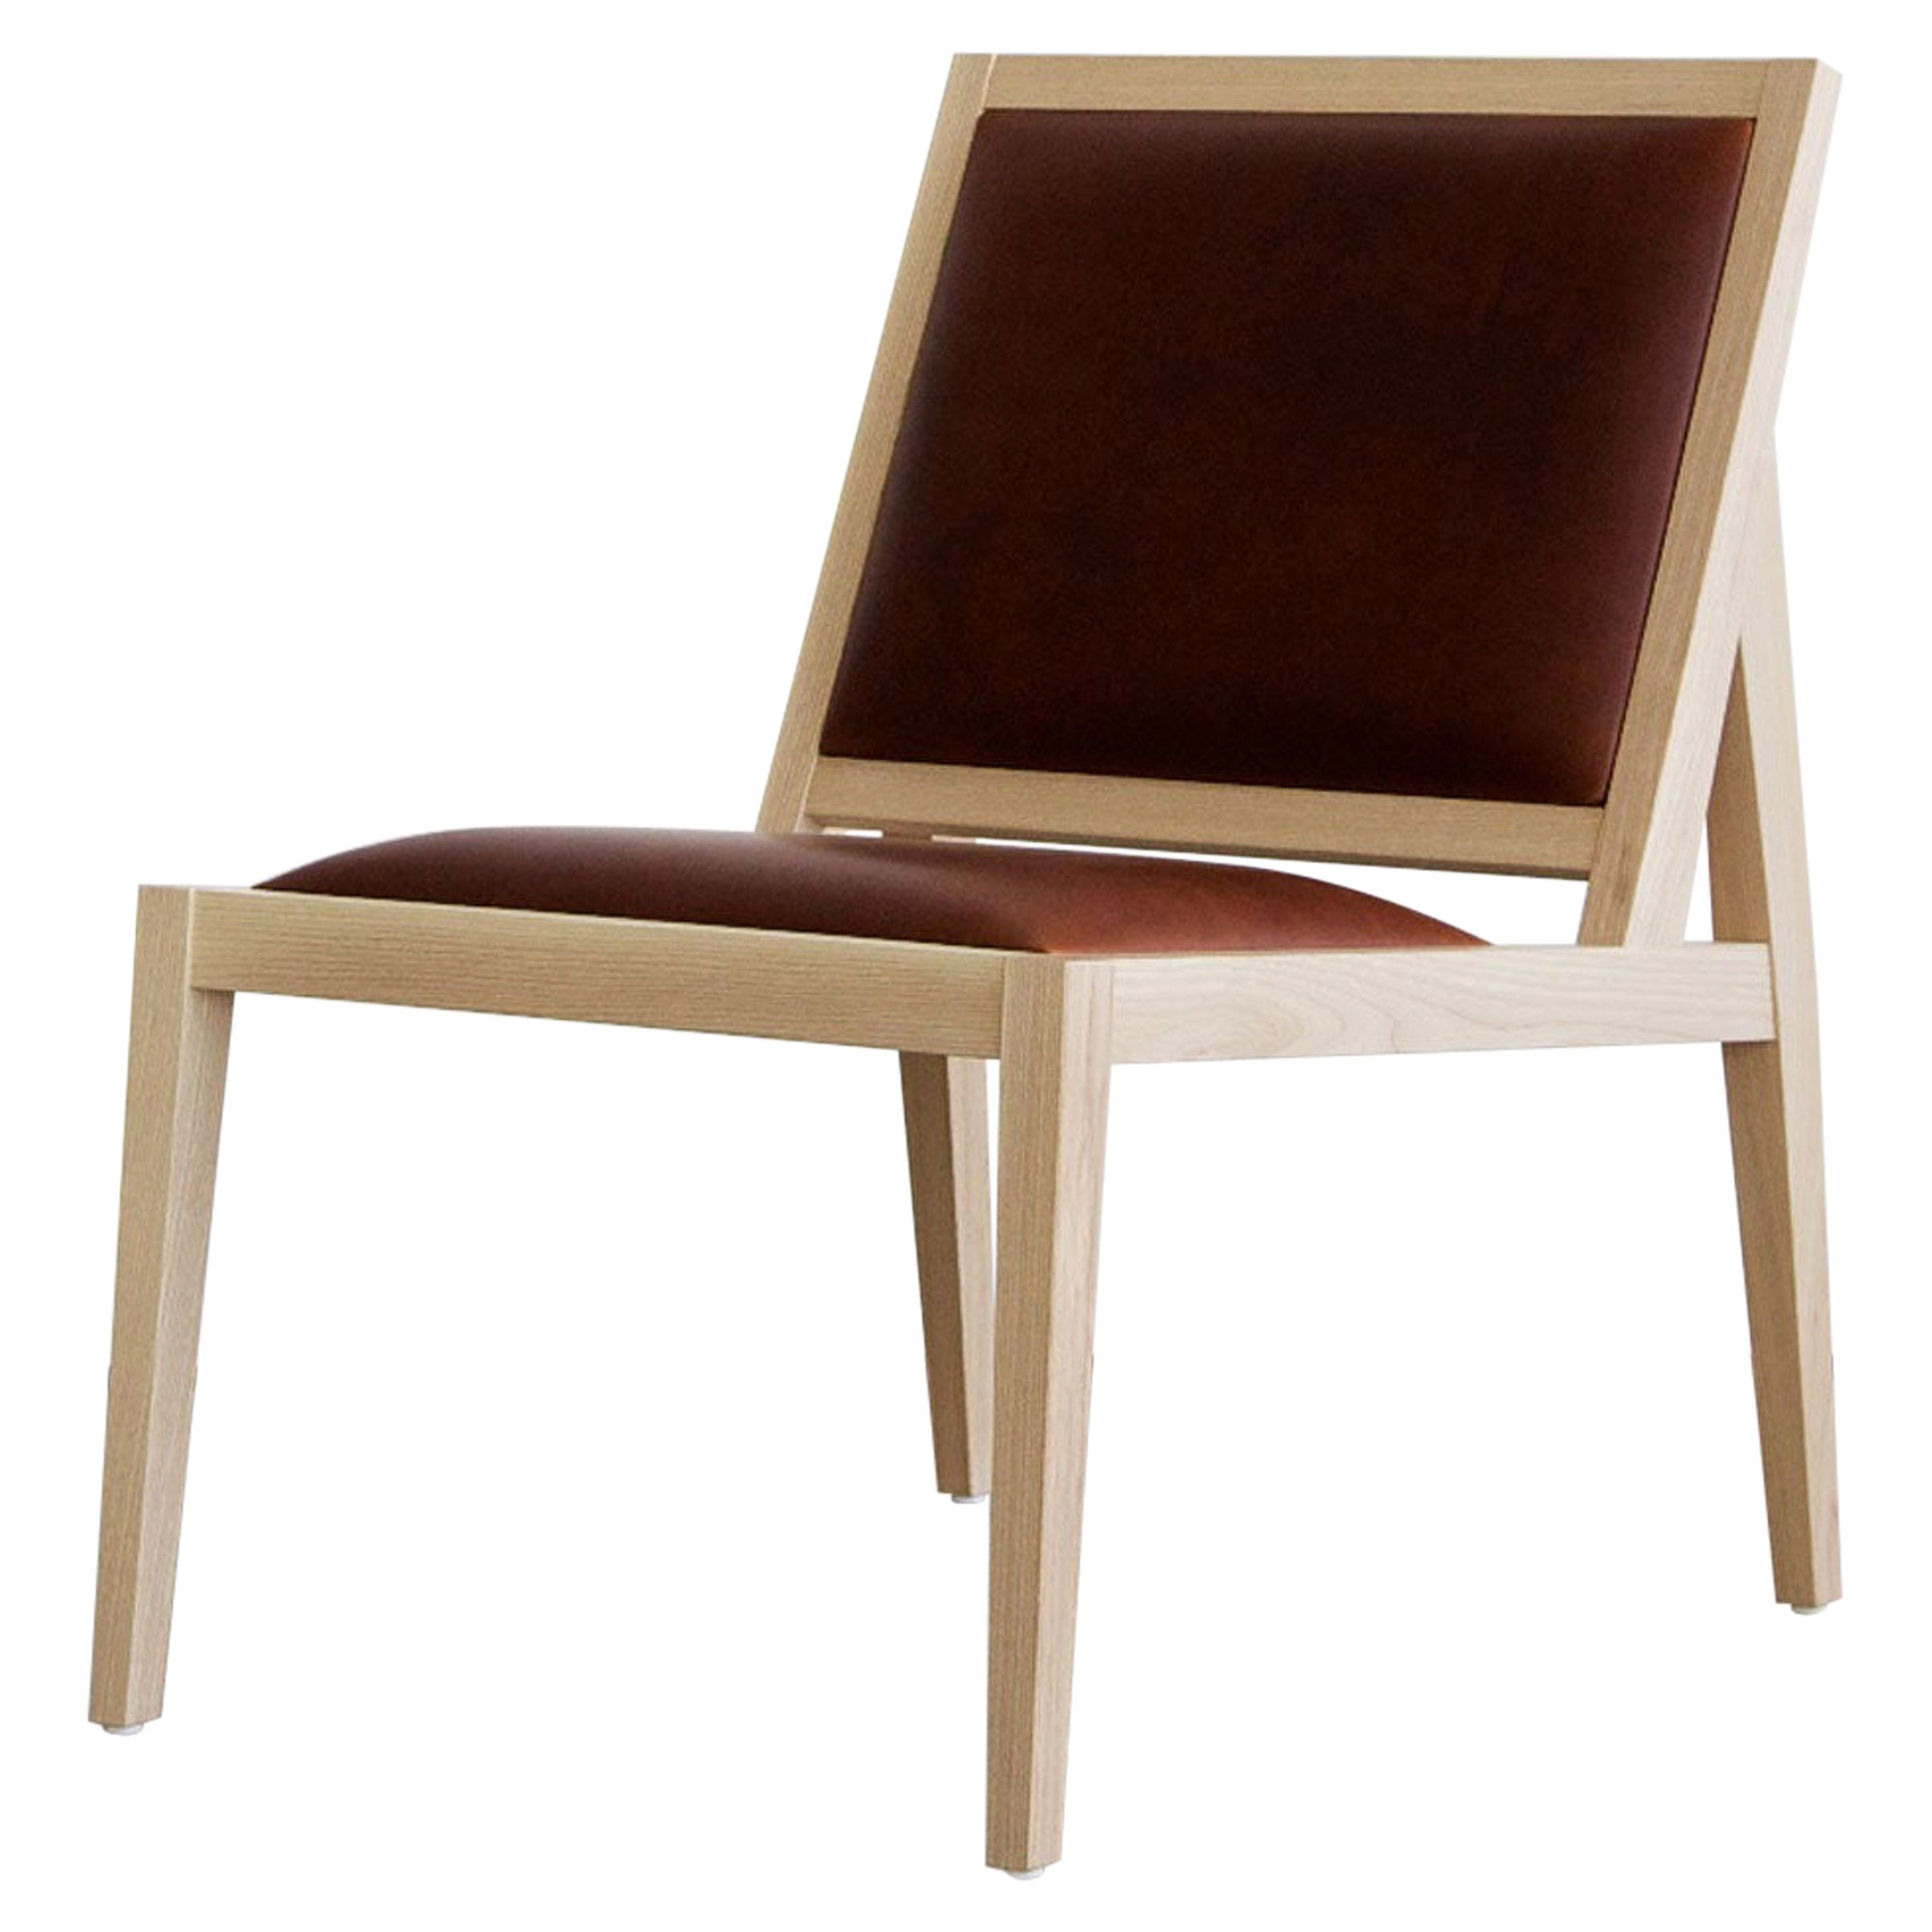 Low Back Lounger in Natural Ash with Brown Leather